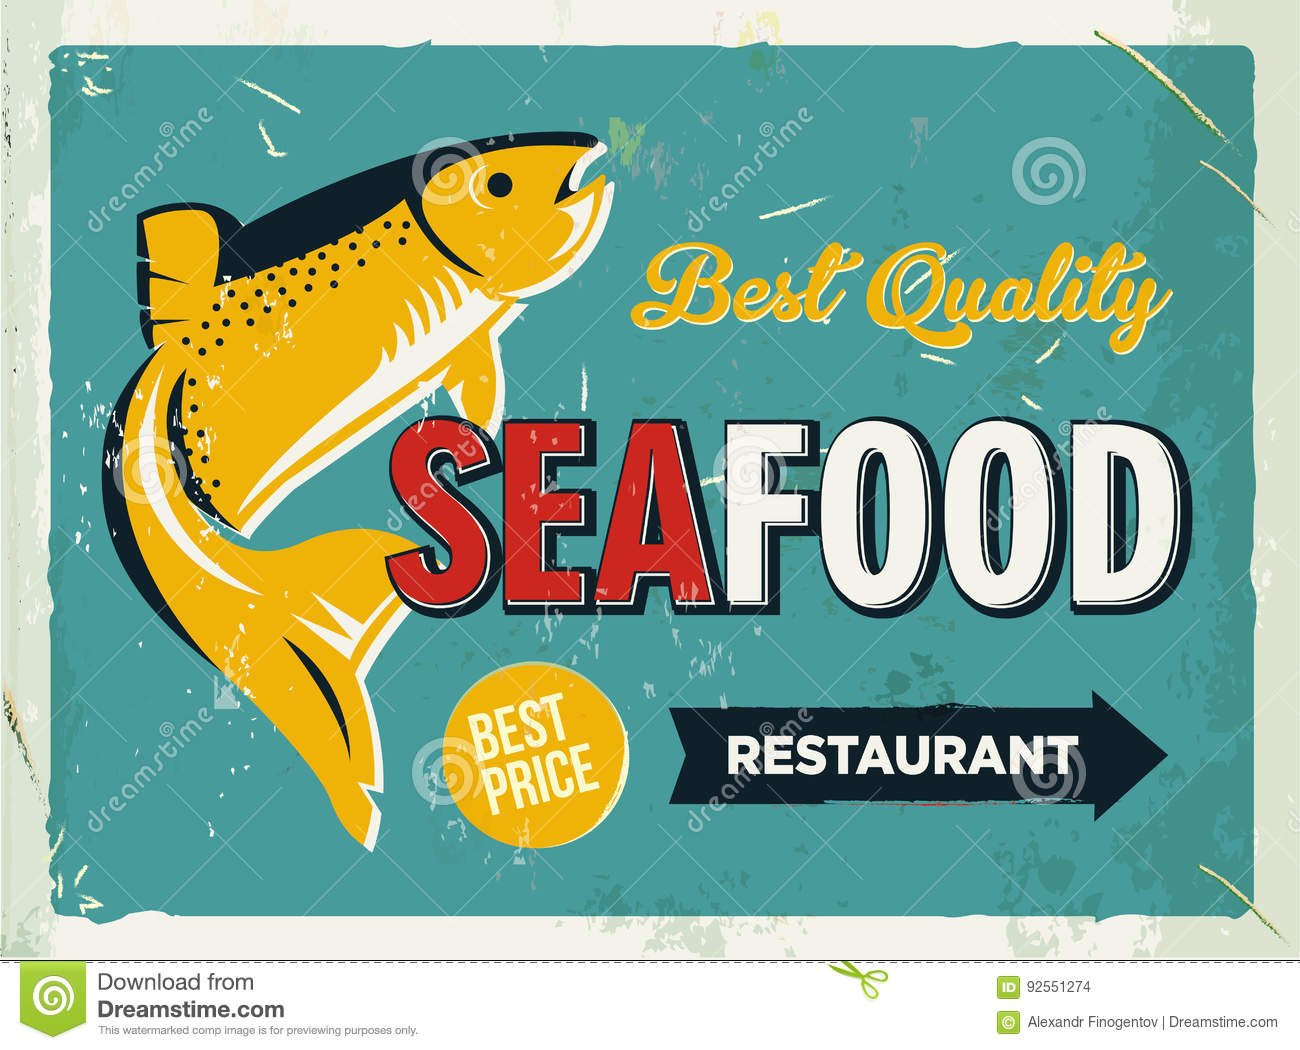 Grunge Retro Metal Sign With Seafood Logo Vintage Poster Old Fish Restaurant Food And Drink Background Theme Stock Vector Illustration Of Asian Salad 92551274